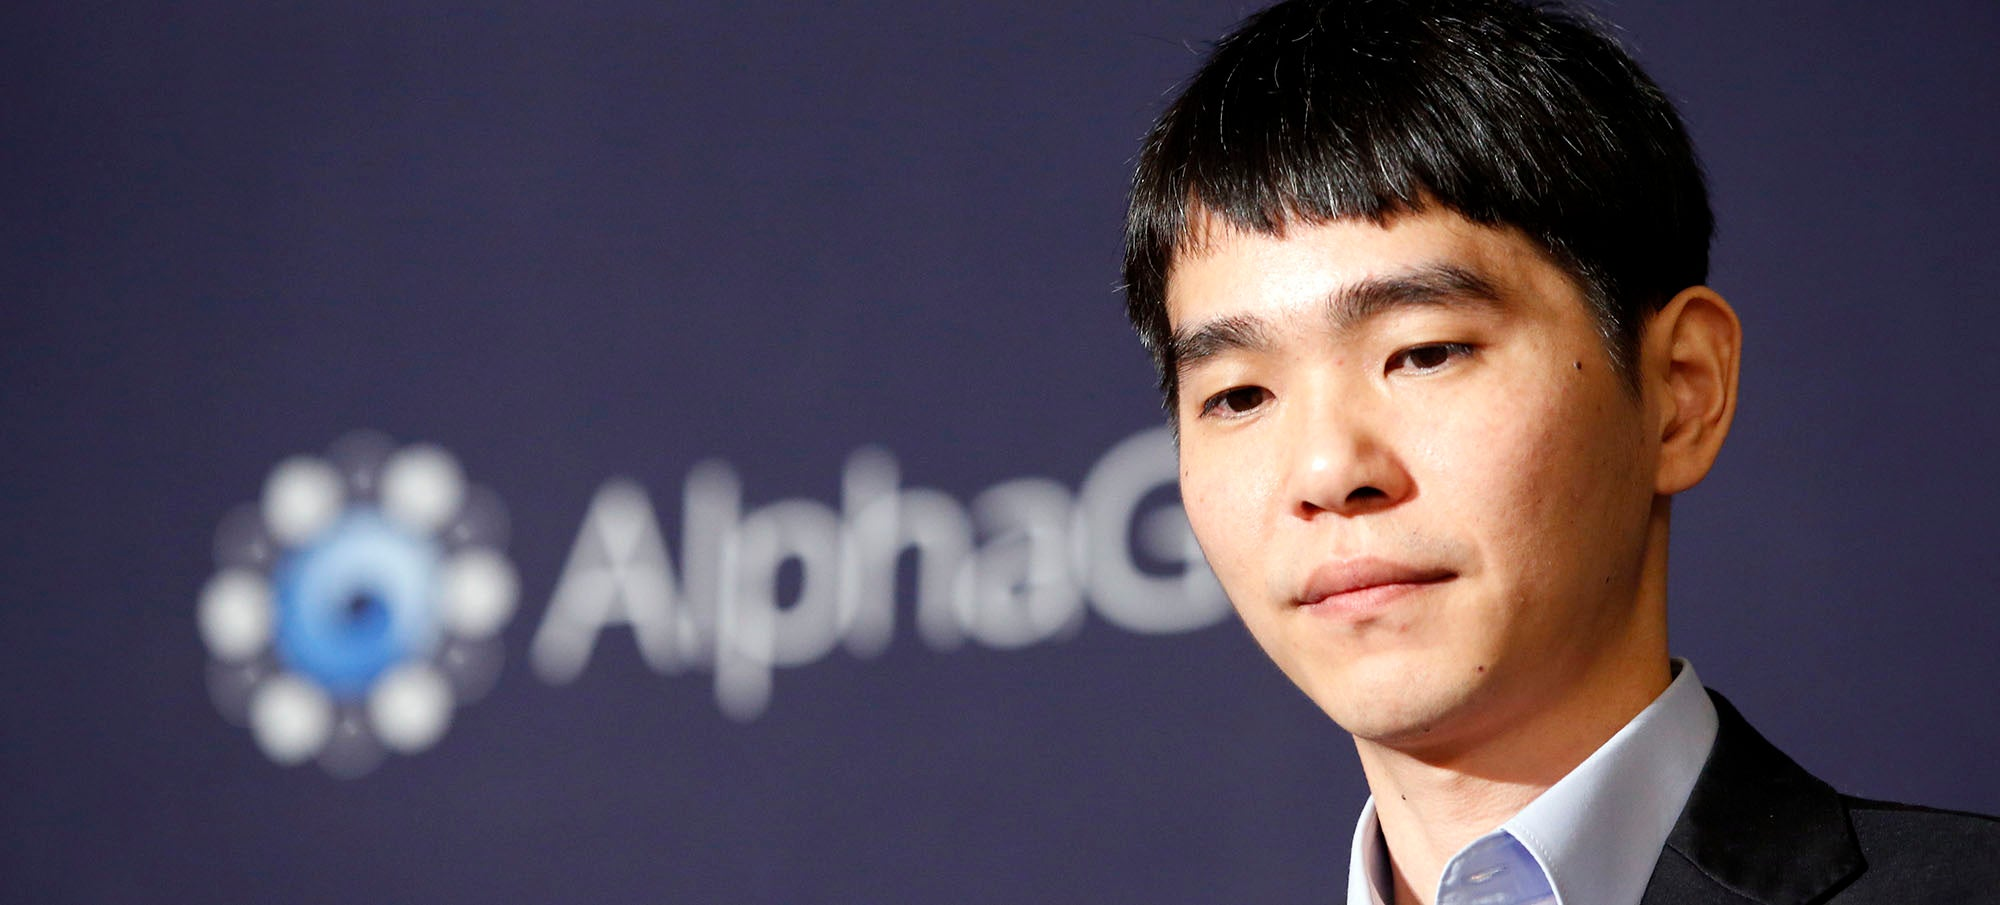 Lee Sedol Loses Final Go Match Making It a 4-1 Victory for Google's AI